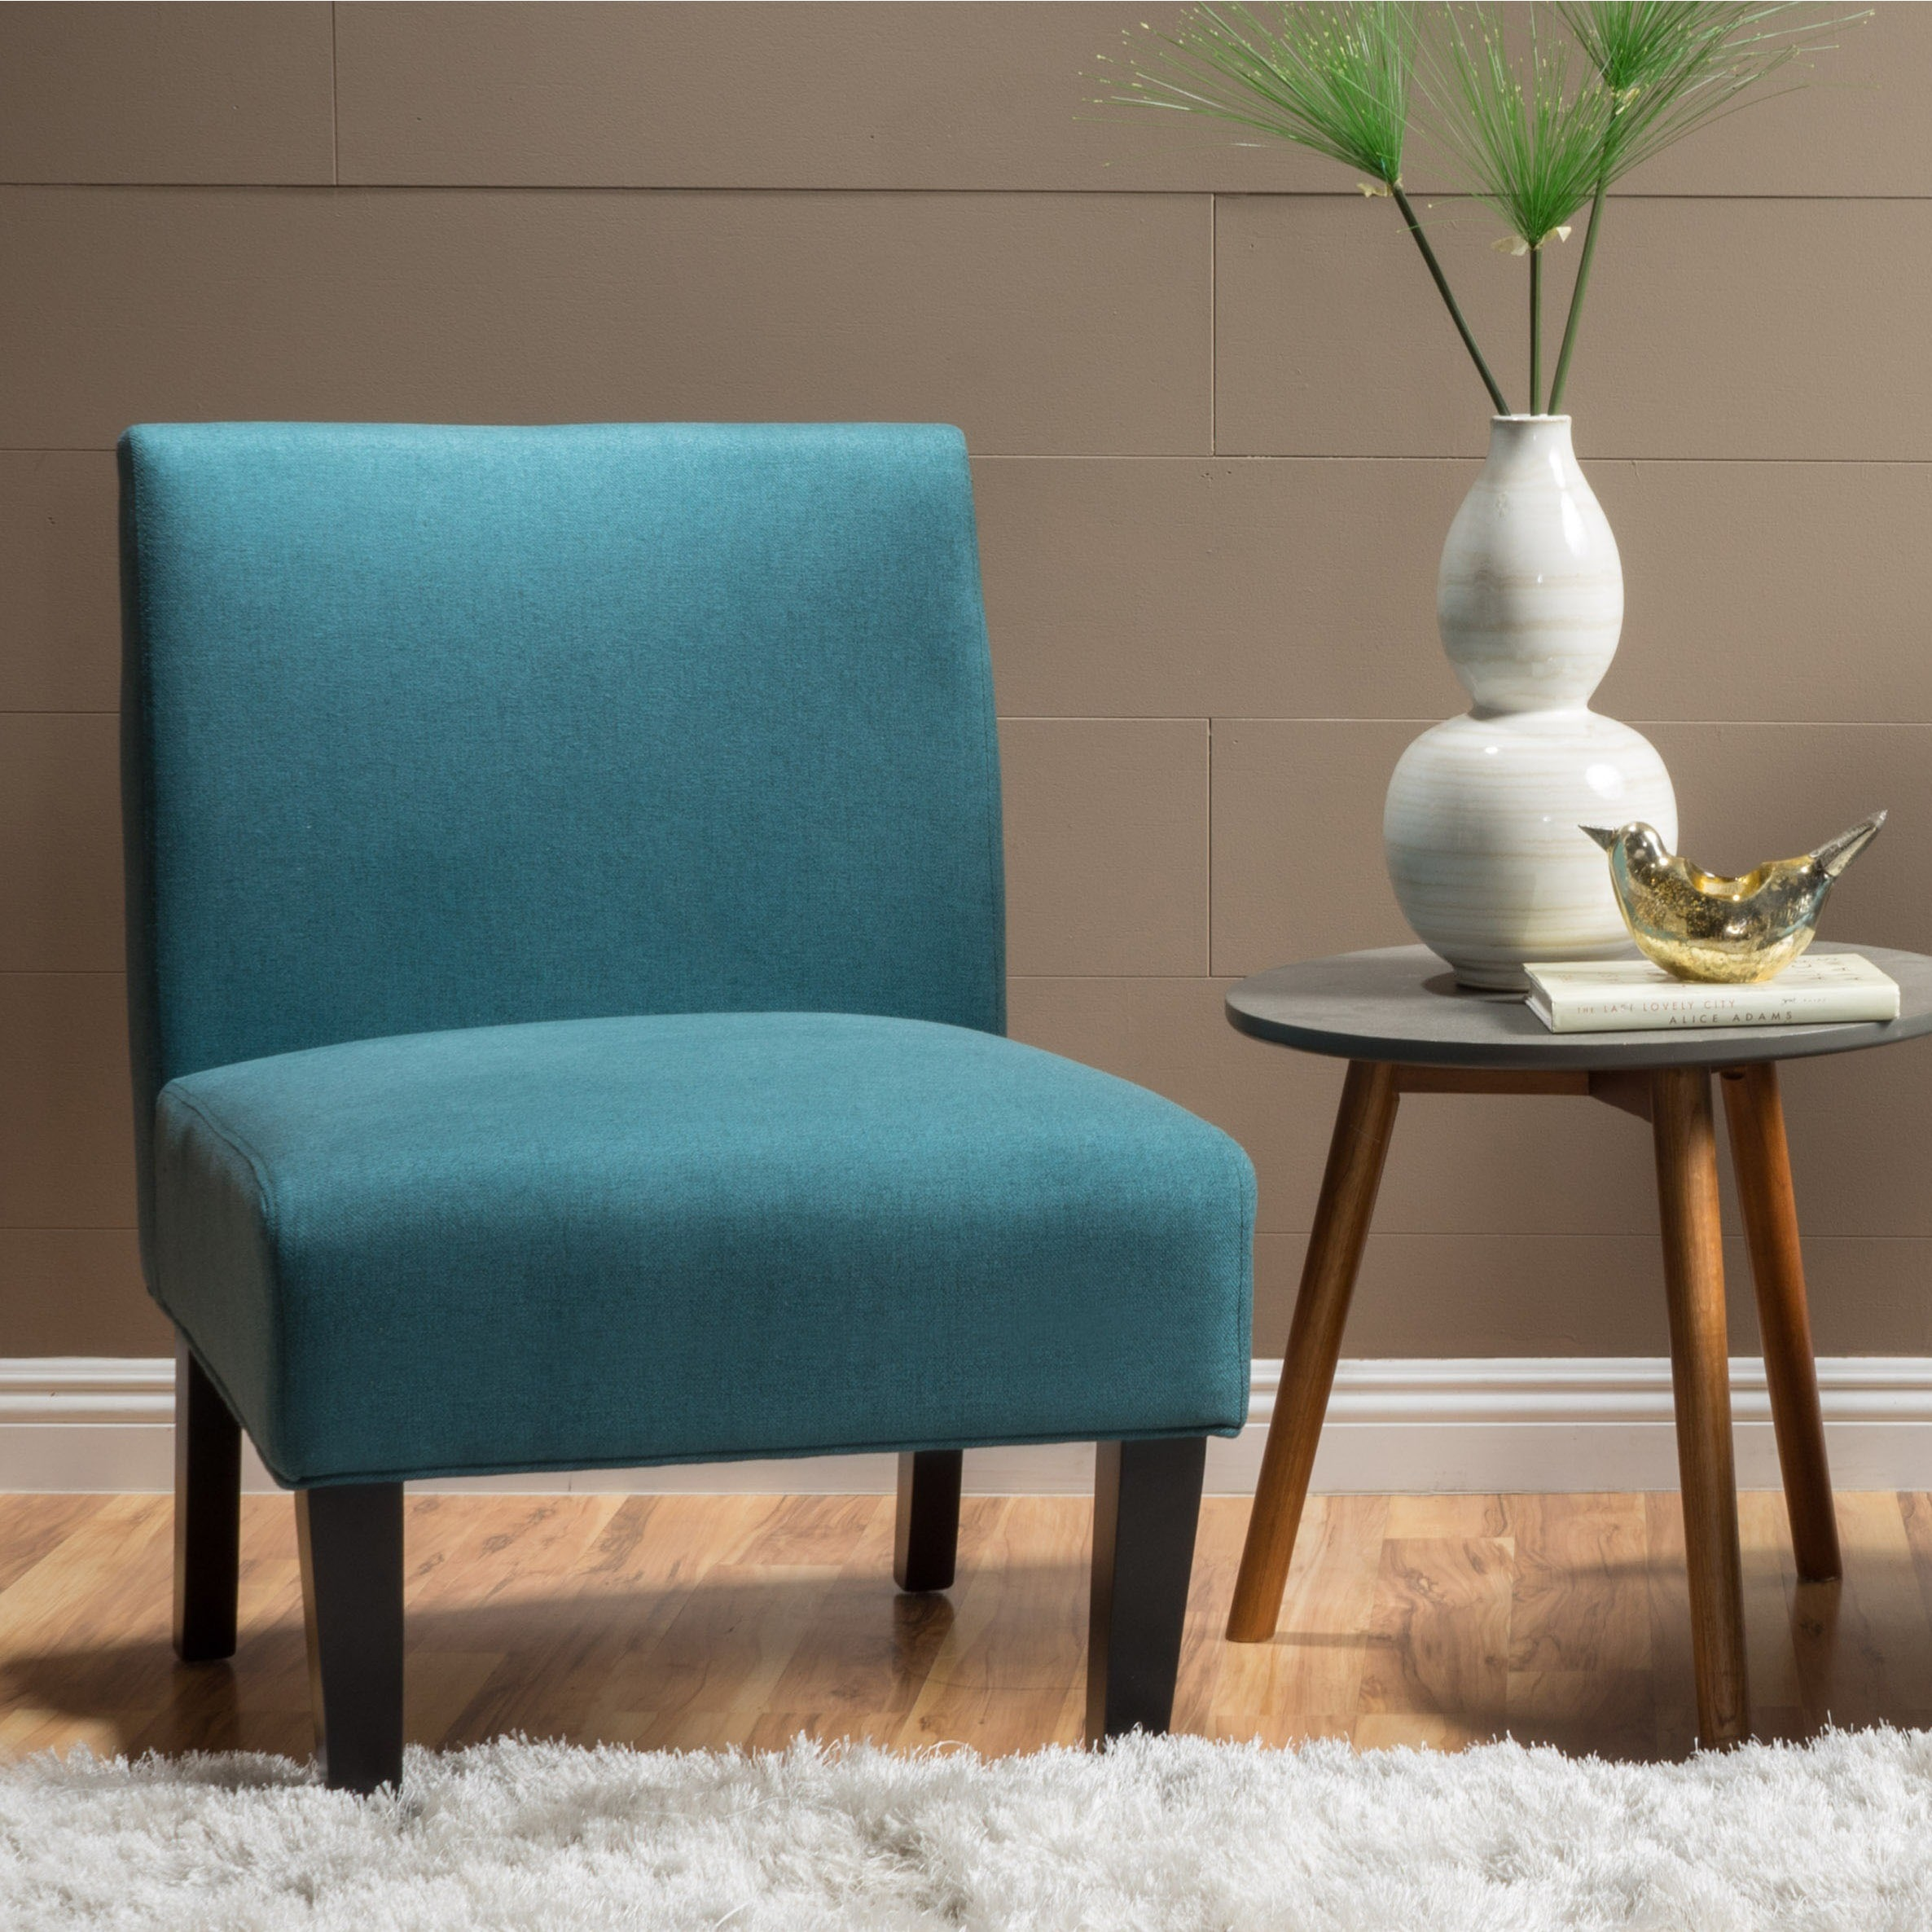 Buy Accent Chairs Living Room Chairs Online at Overstock.com | Our ...